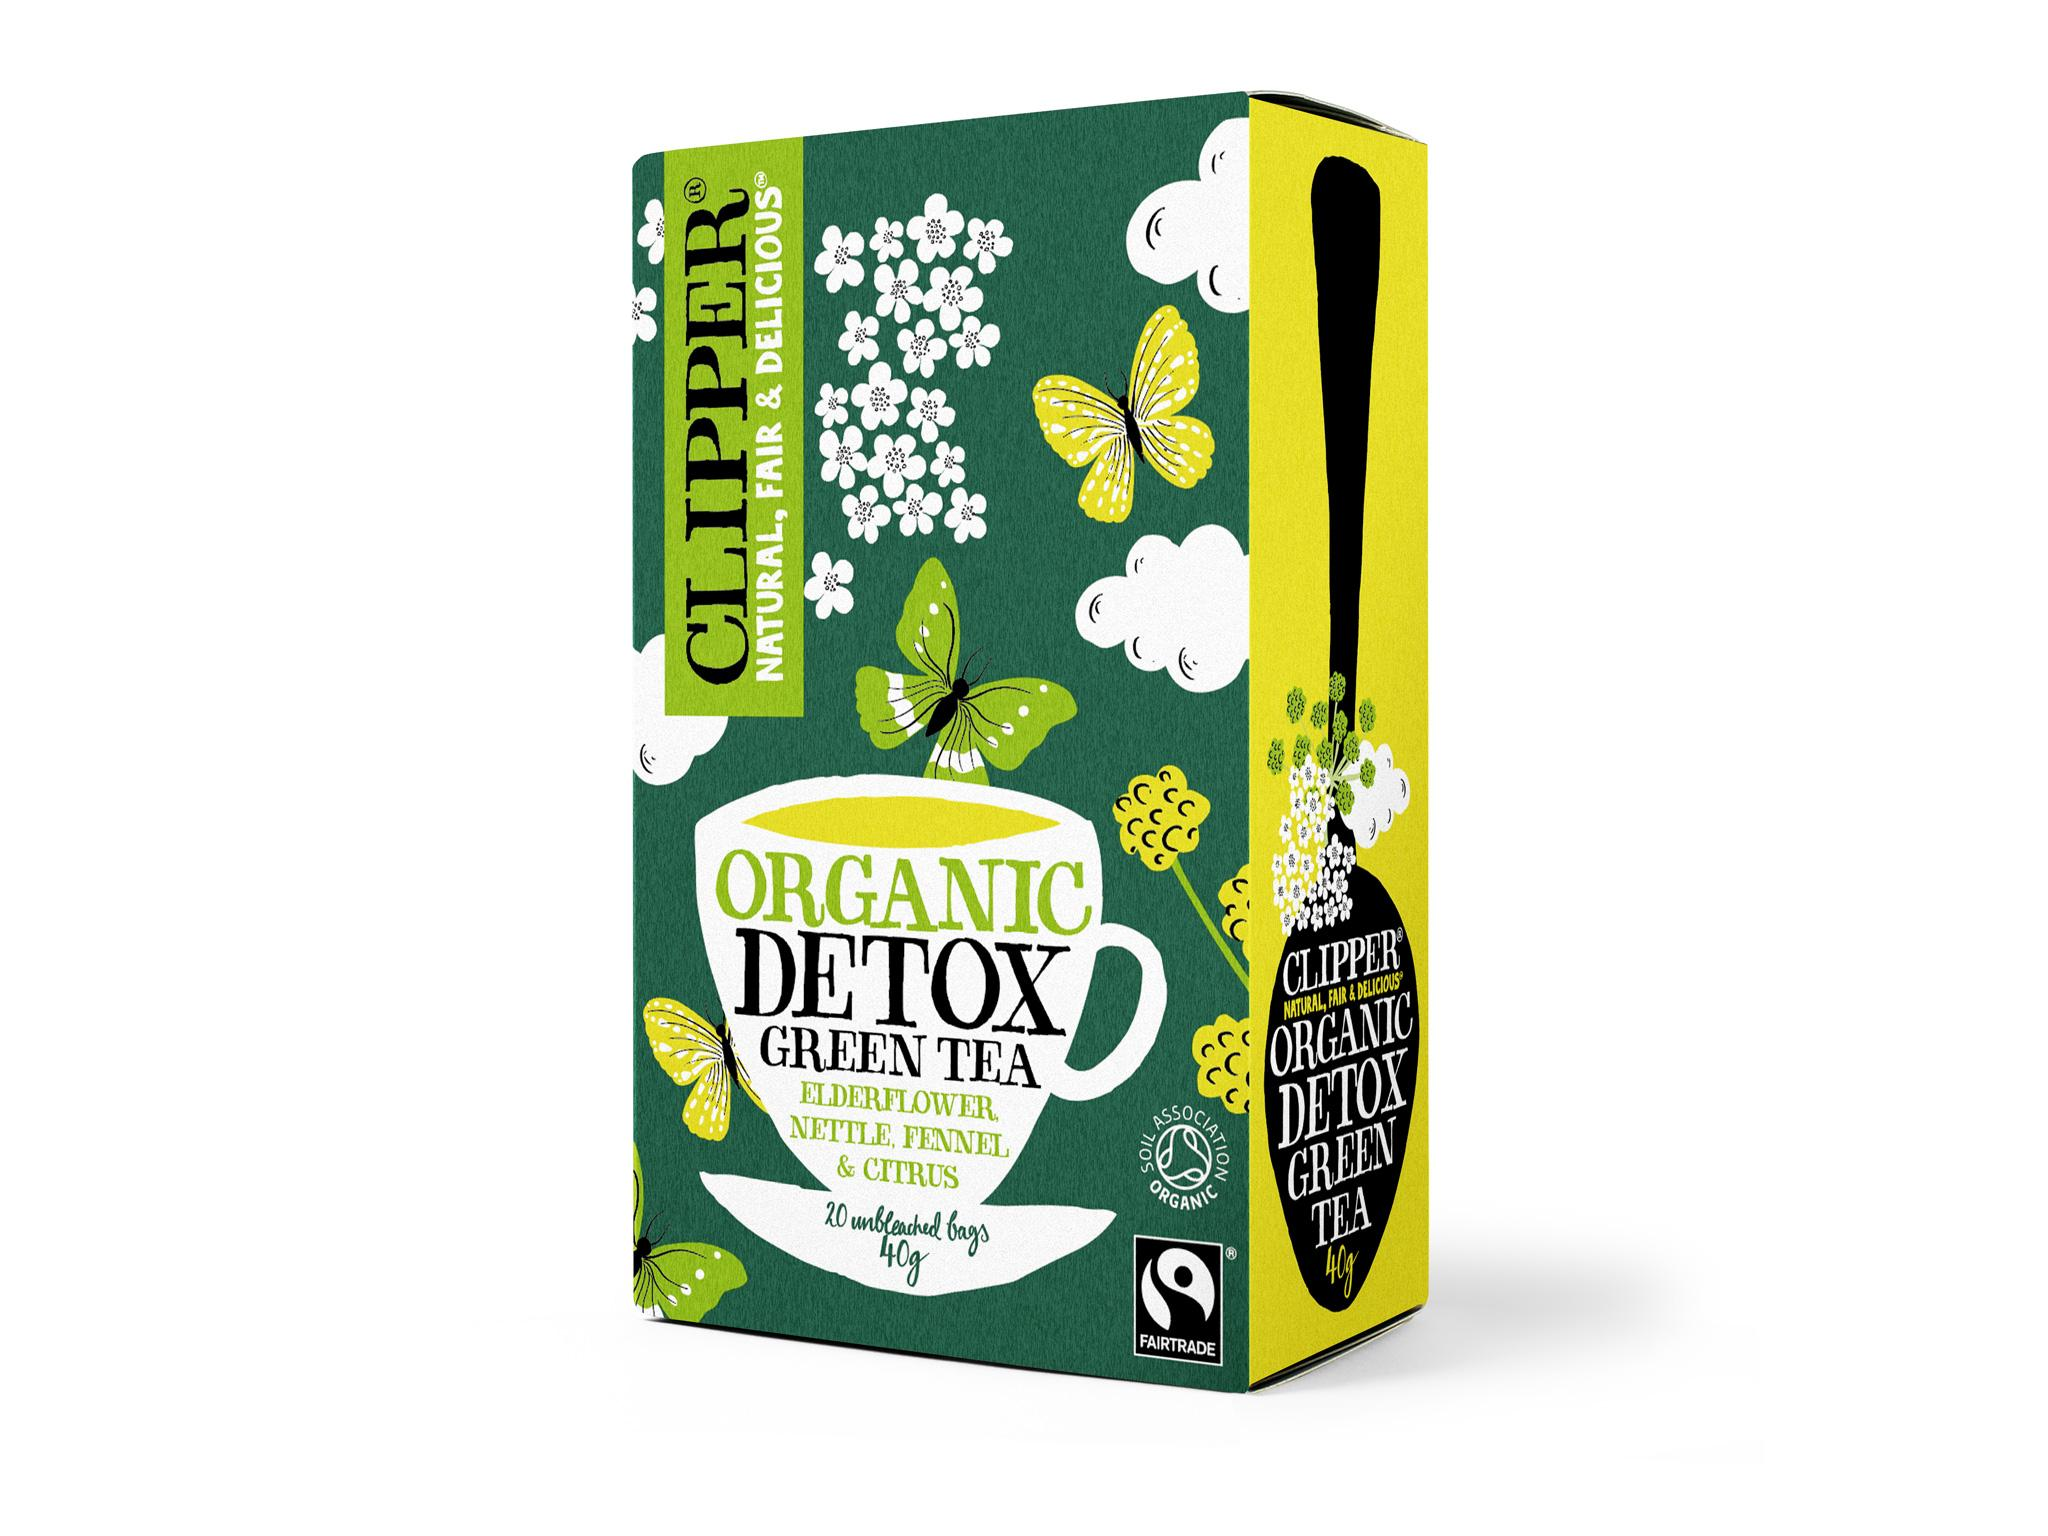 10 Best Detox Teas The Independent